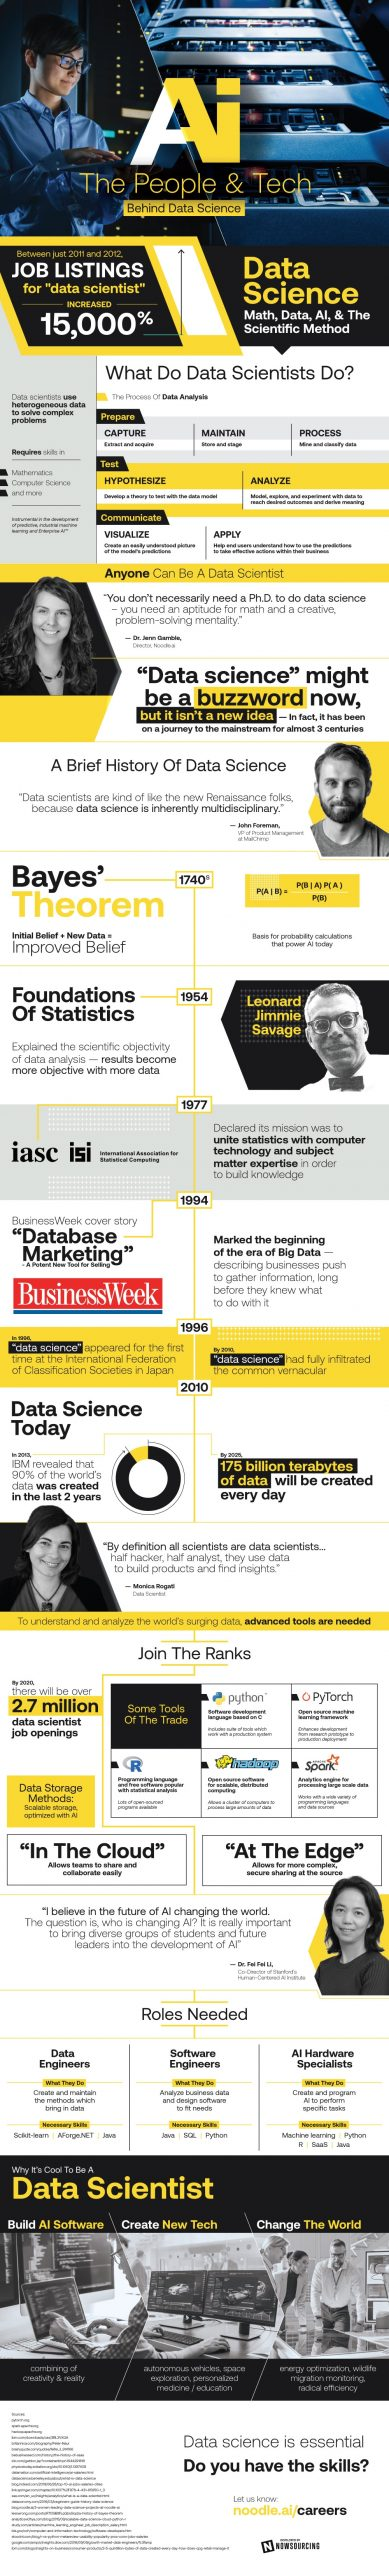 The Makers of Data Science